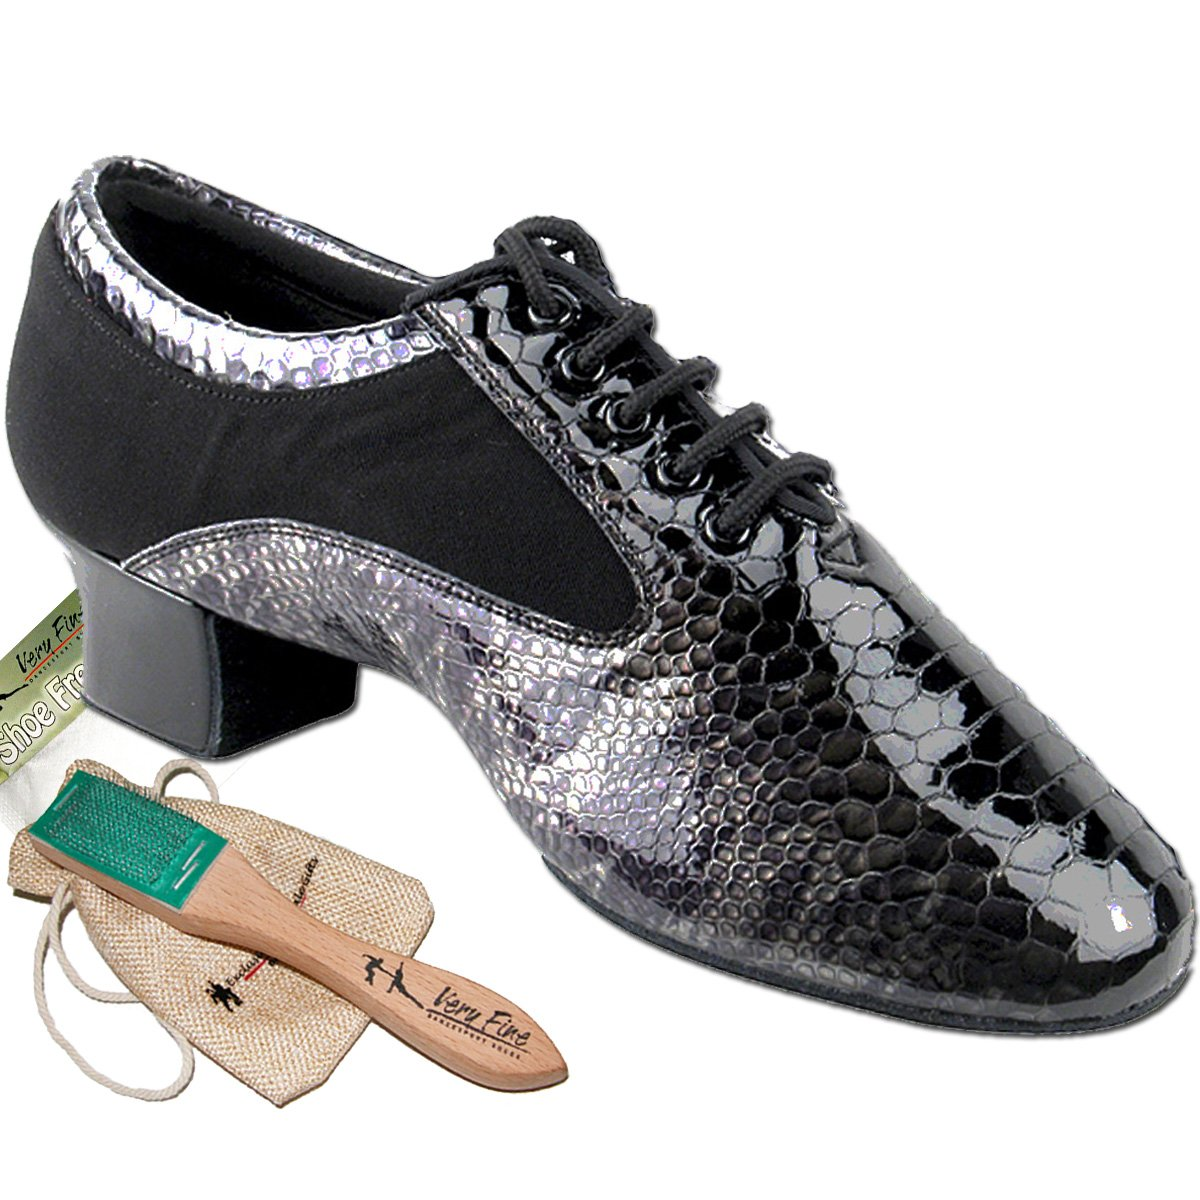 Men's Ballroom Dance Shoes Tango Wedding Salsa Latin Dance Shoes Black Snake Patent S445EB Comfortable - Very Fine 1.5'' Heel 11.5 M US [Bundle of 5] by Very Fine Dance Shoes